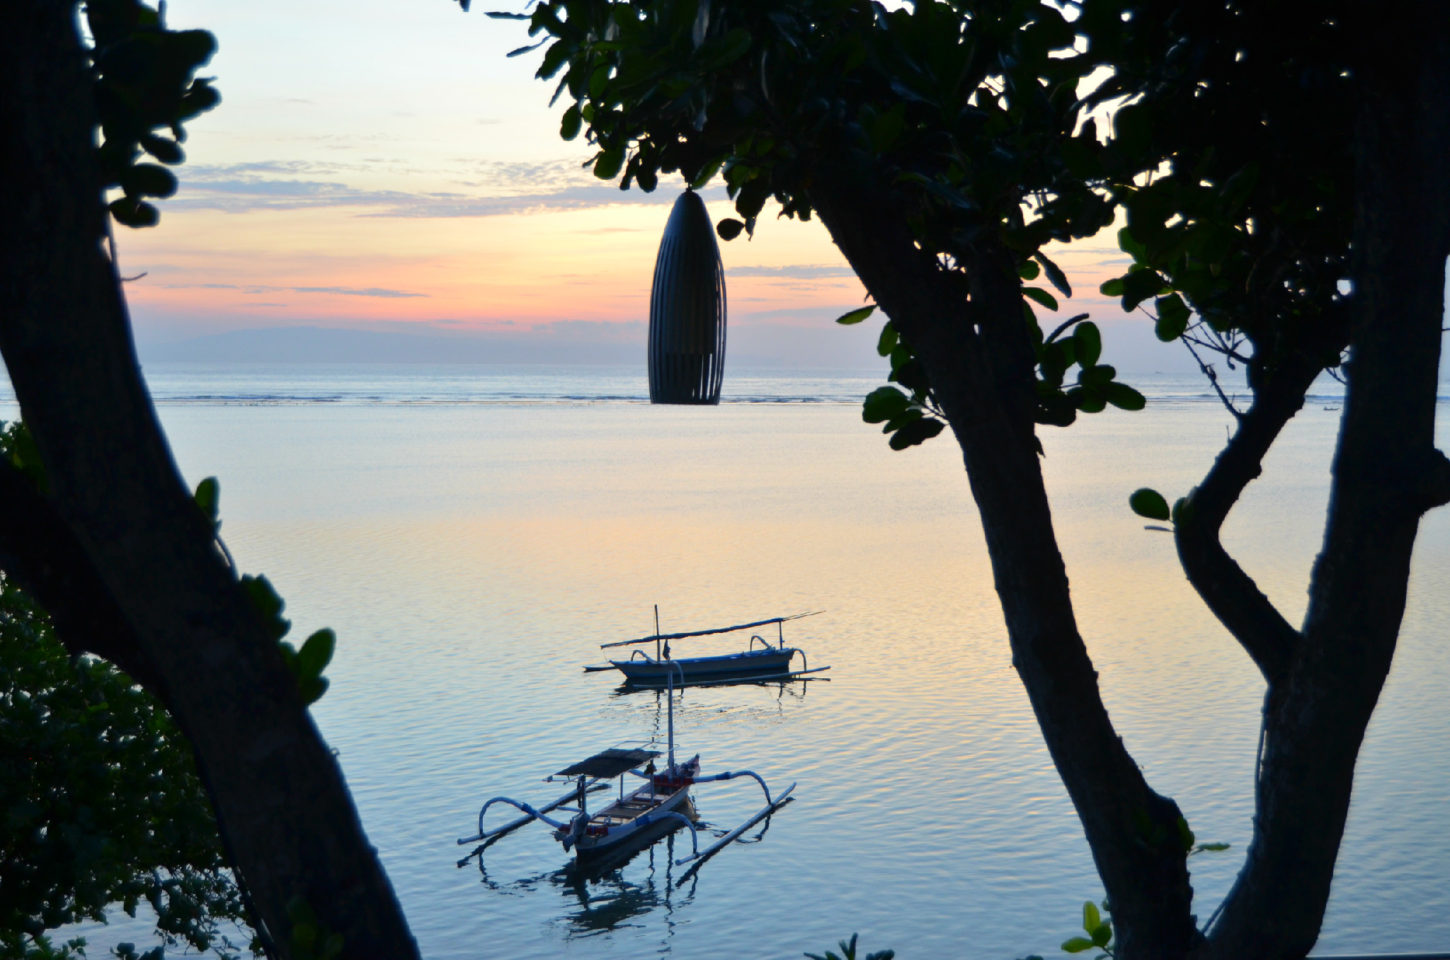 lifestyle redesign  - dsc 0174edited - Bali Getaway: Where to Stay and What to See in Sanur